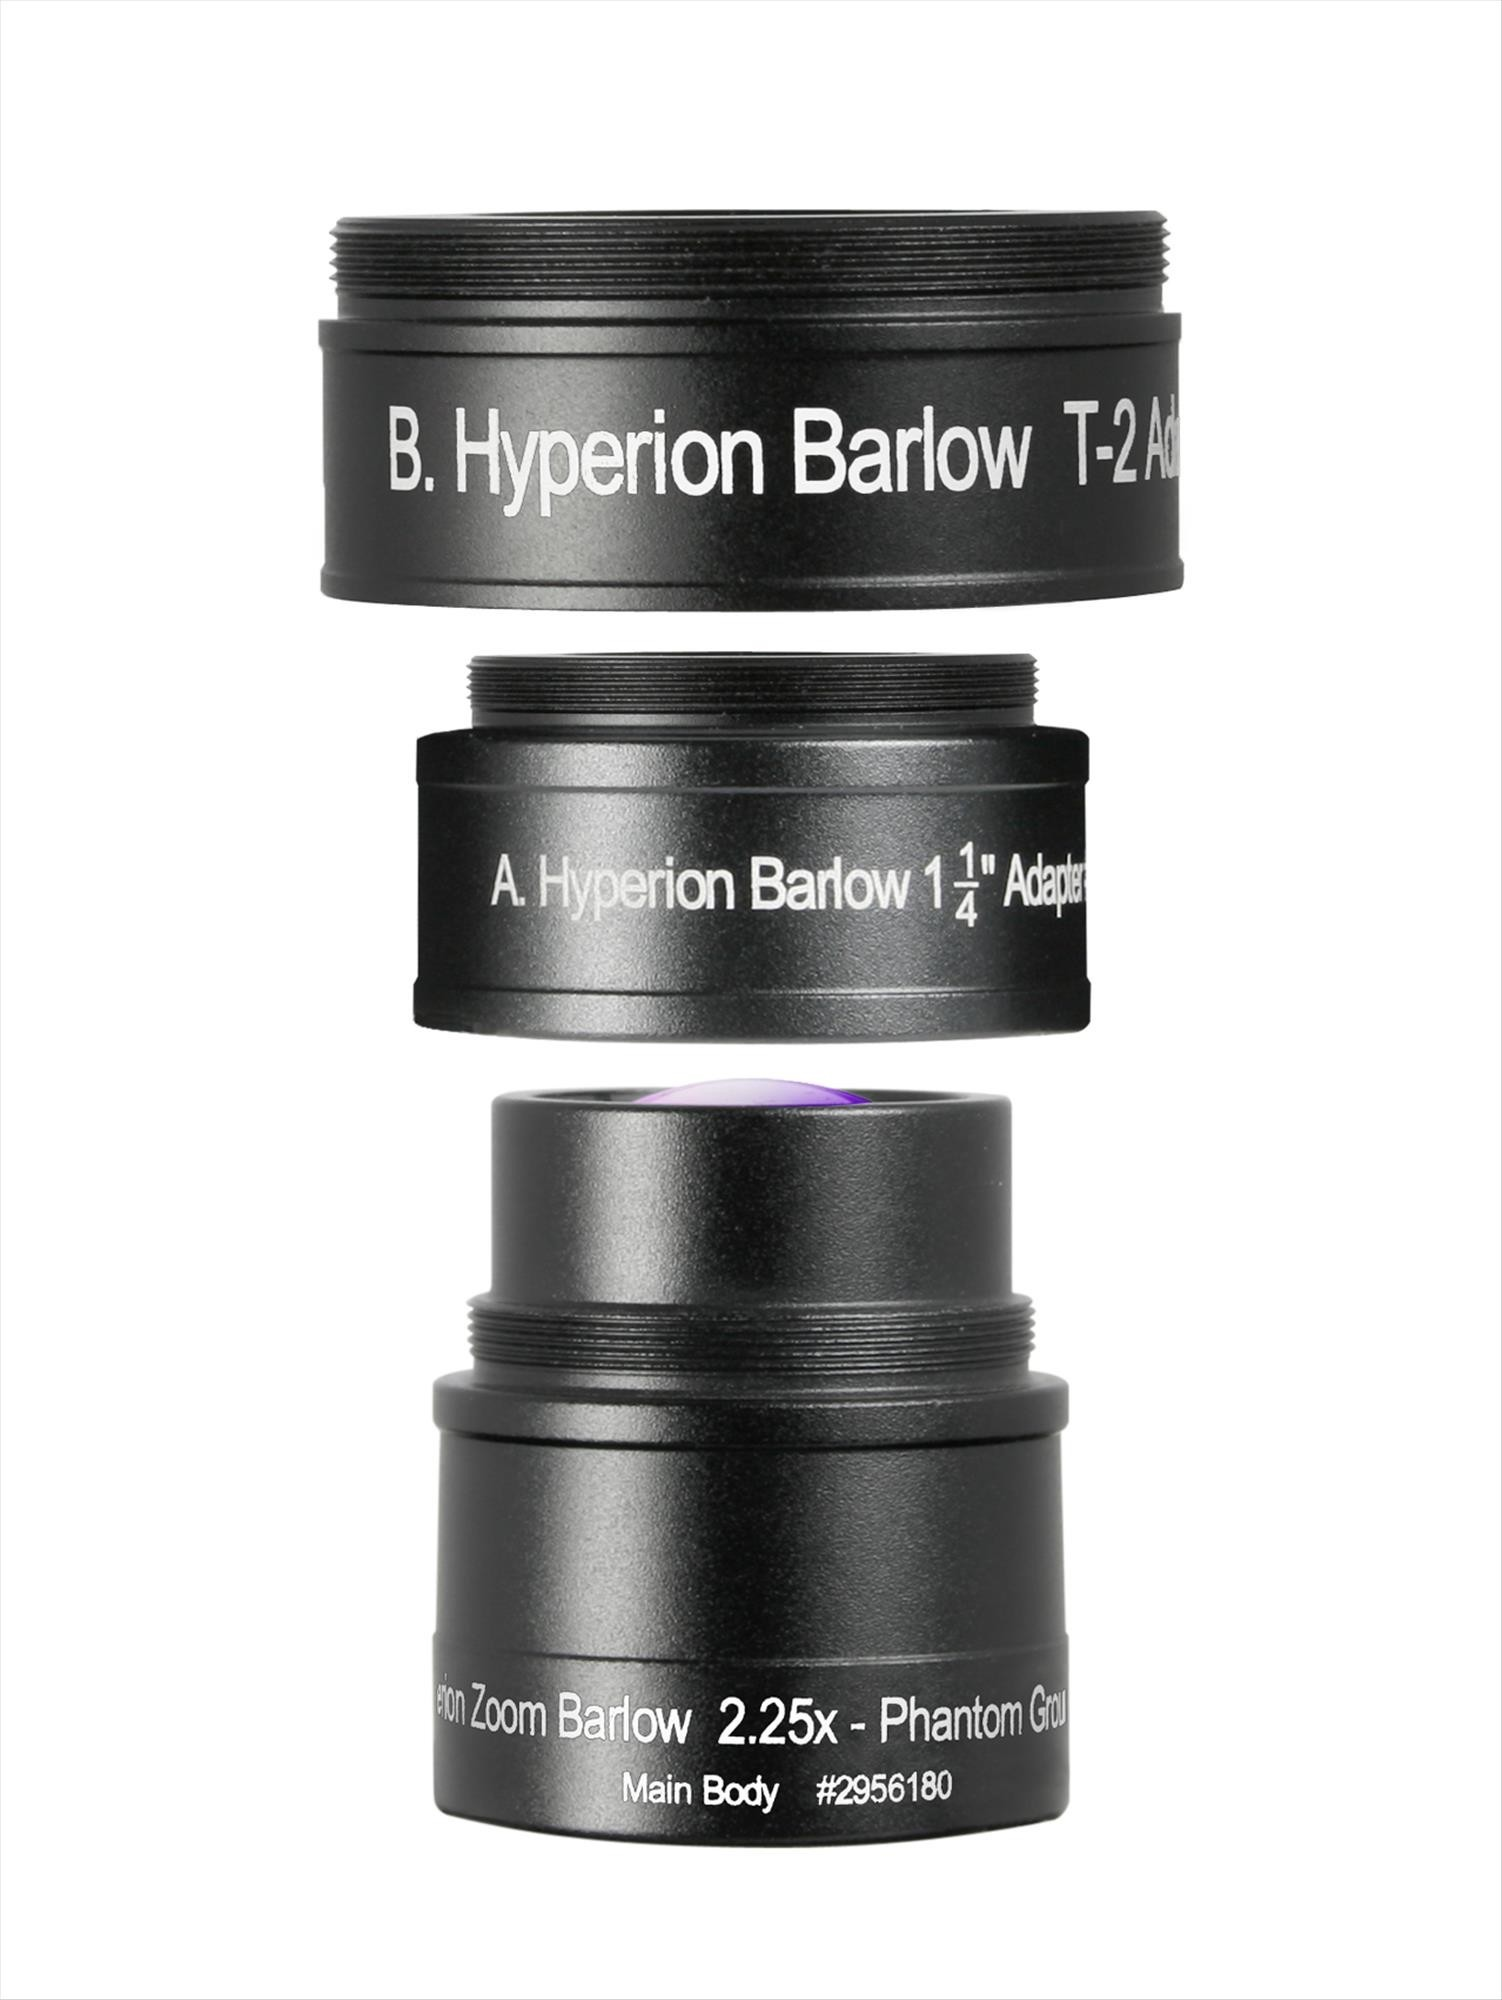 Baader Lente di Barlow 2.25x specifica per oculare Hyperion Zoom, Multi Coated